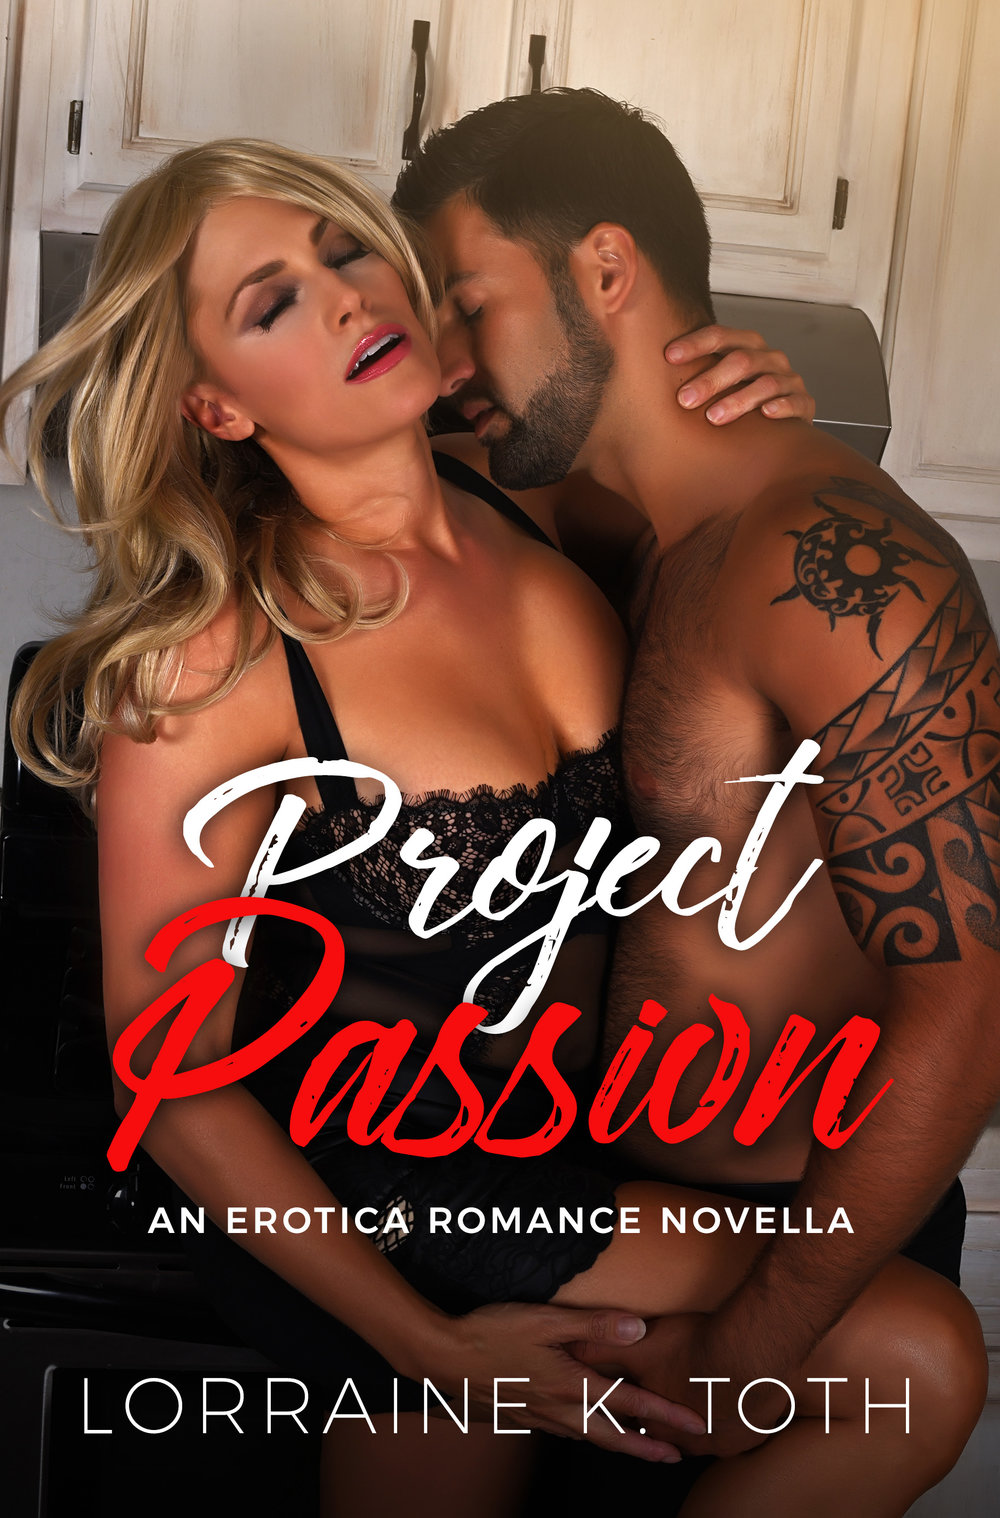 Project Passion  - Things heat up in the kitchen and Sadie and Ben go from friends to lovers in this steamy erotic novella. A perfect quick read for those cold nights when you need to heat things up. Will the two lovers be each other's gifts to unwrap for the holidays or will Sadie lose her best friend and her best lover? The first book of a series involving Sadie and her sexual escapades.